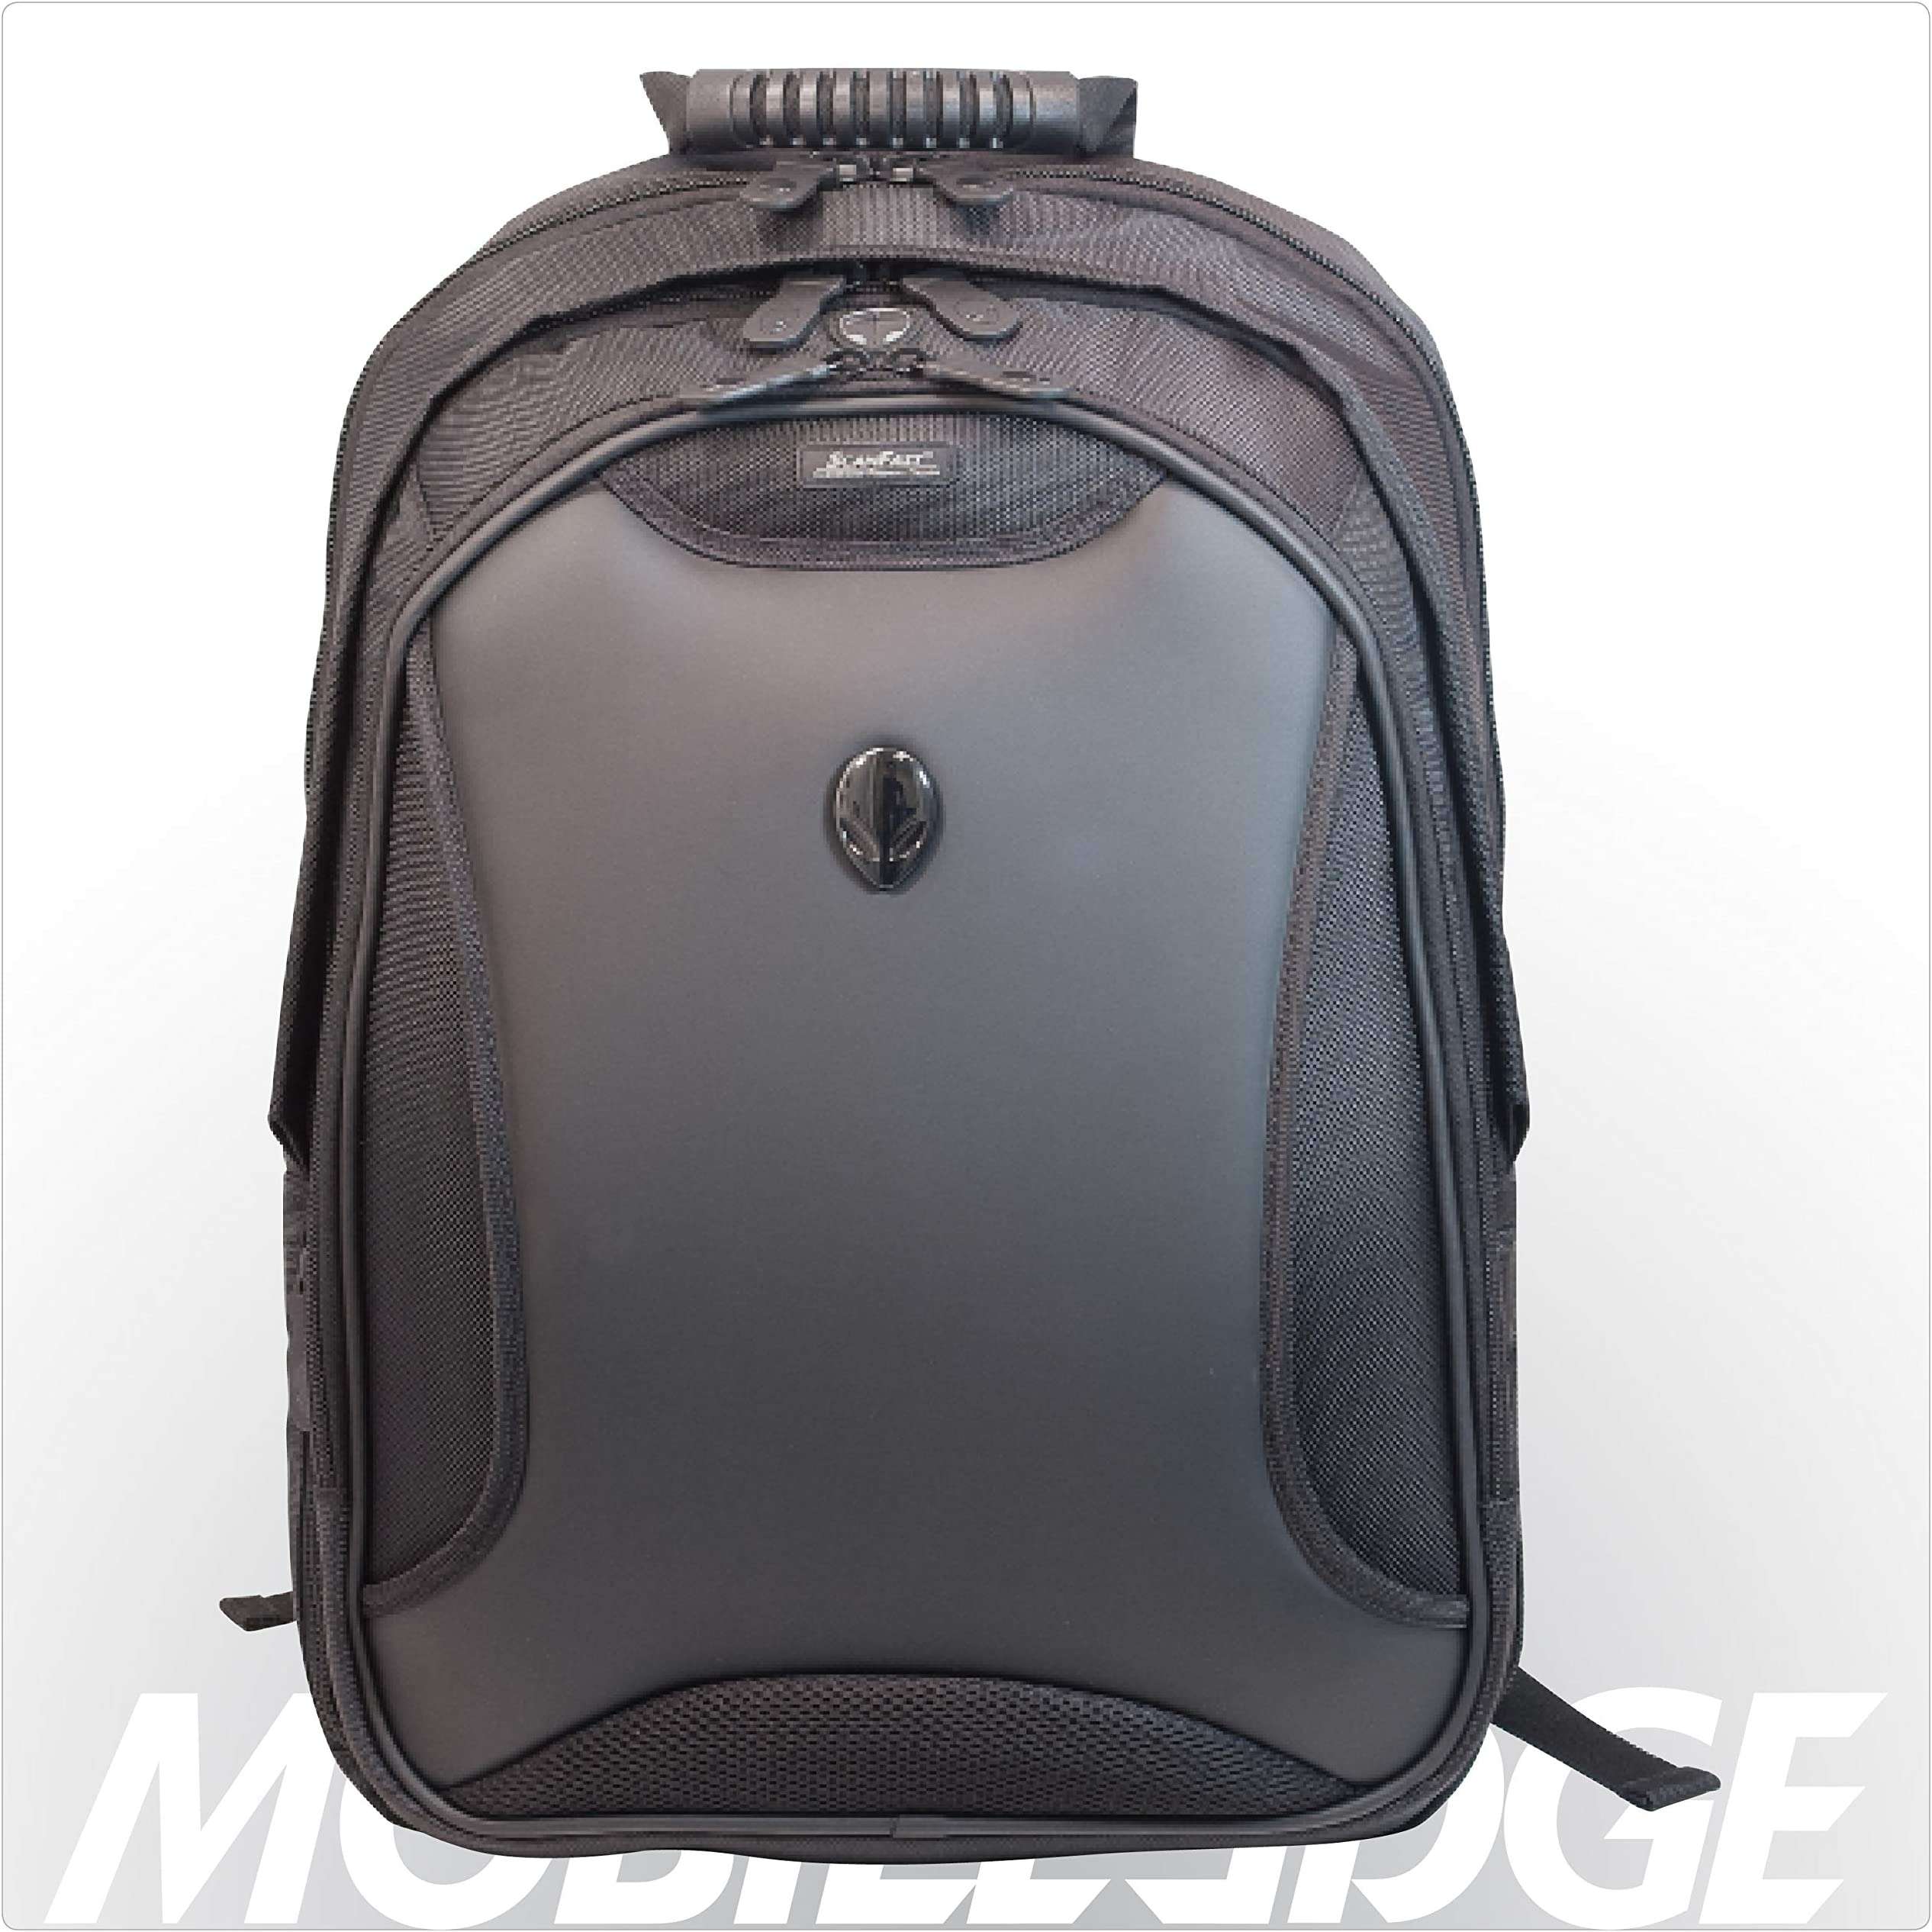 Mobile Edge Alienware Orion M17x ScanFast TSA Checkpoint Friendly 17.3-Inch Gaming Laptop Backpack (ME-AWBP2.0), Black